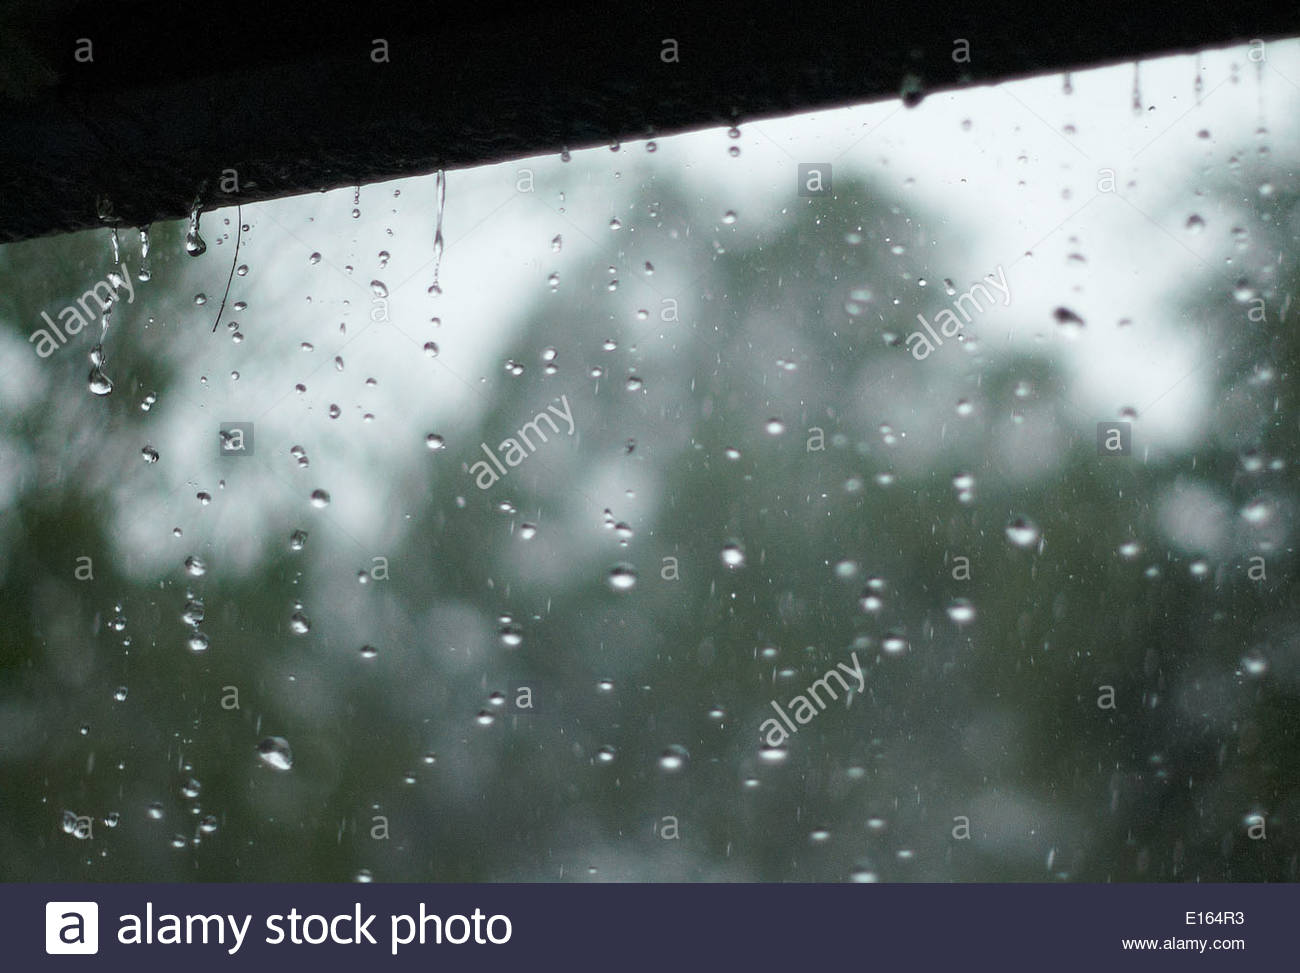 Rain drops falling from the eaves and gutters of a house, during a period of heavy rainfall - droplets frozen in mid-air, with blurred flora and sky. - Stock Image